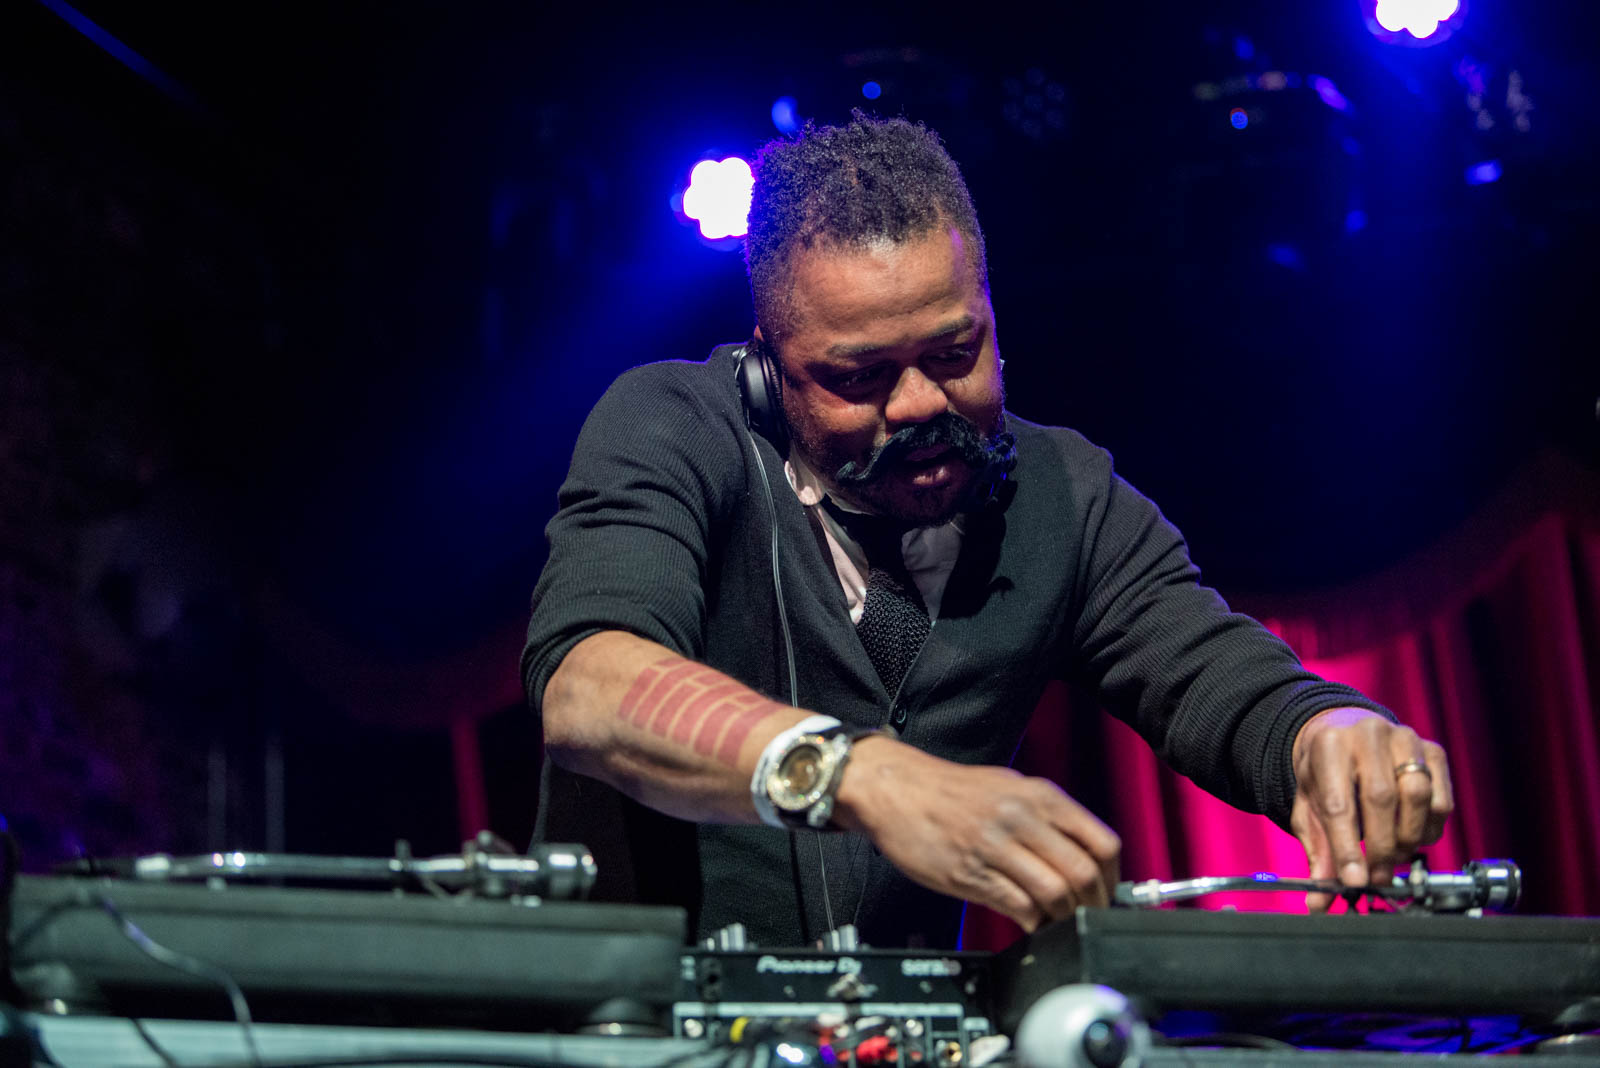 DJ Just Blaze, who used to be known DJ Firestarter before attending Handsome Boy Modeling School on Thursday, April 5, 2018 at Brooklyn Bowl.